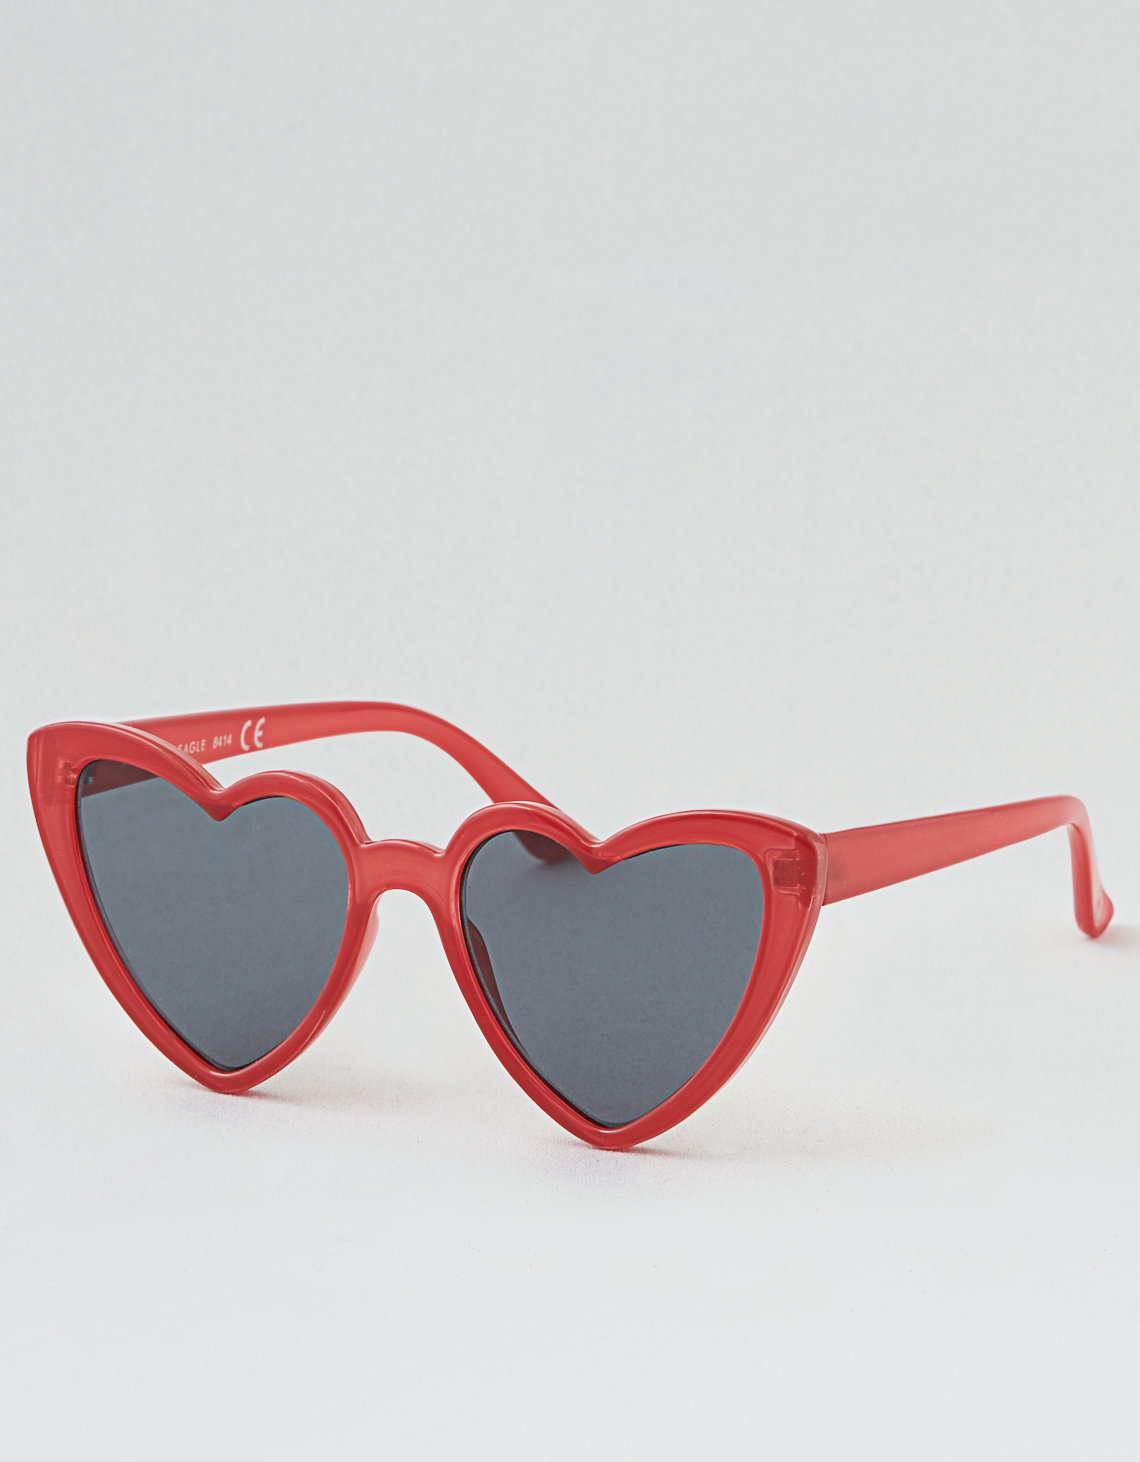 American Eagle heart-shaped sunglasses